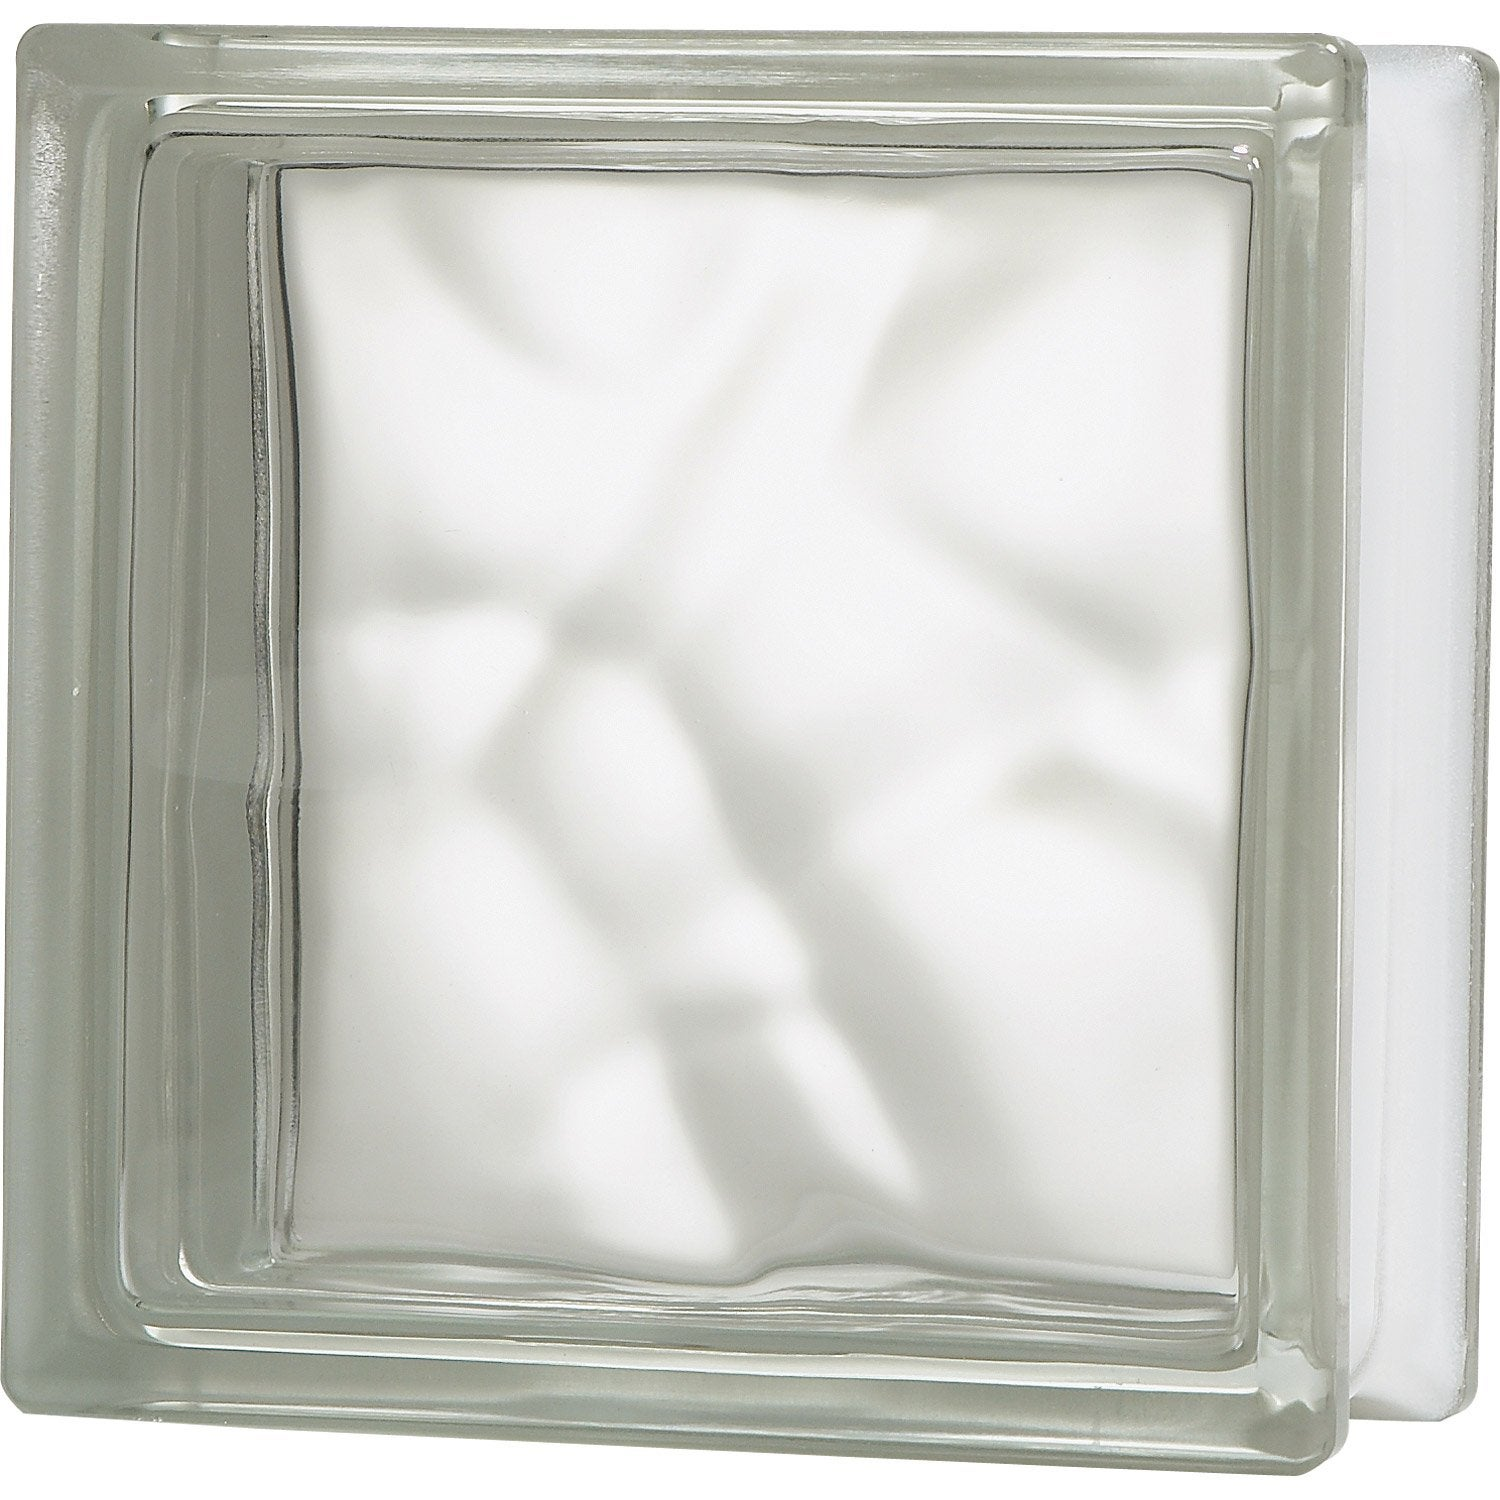 Brique de verre transparent ondul brillant leroy merlin for Salle de bain carreau de verre